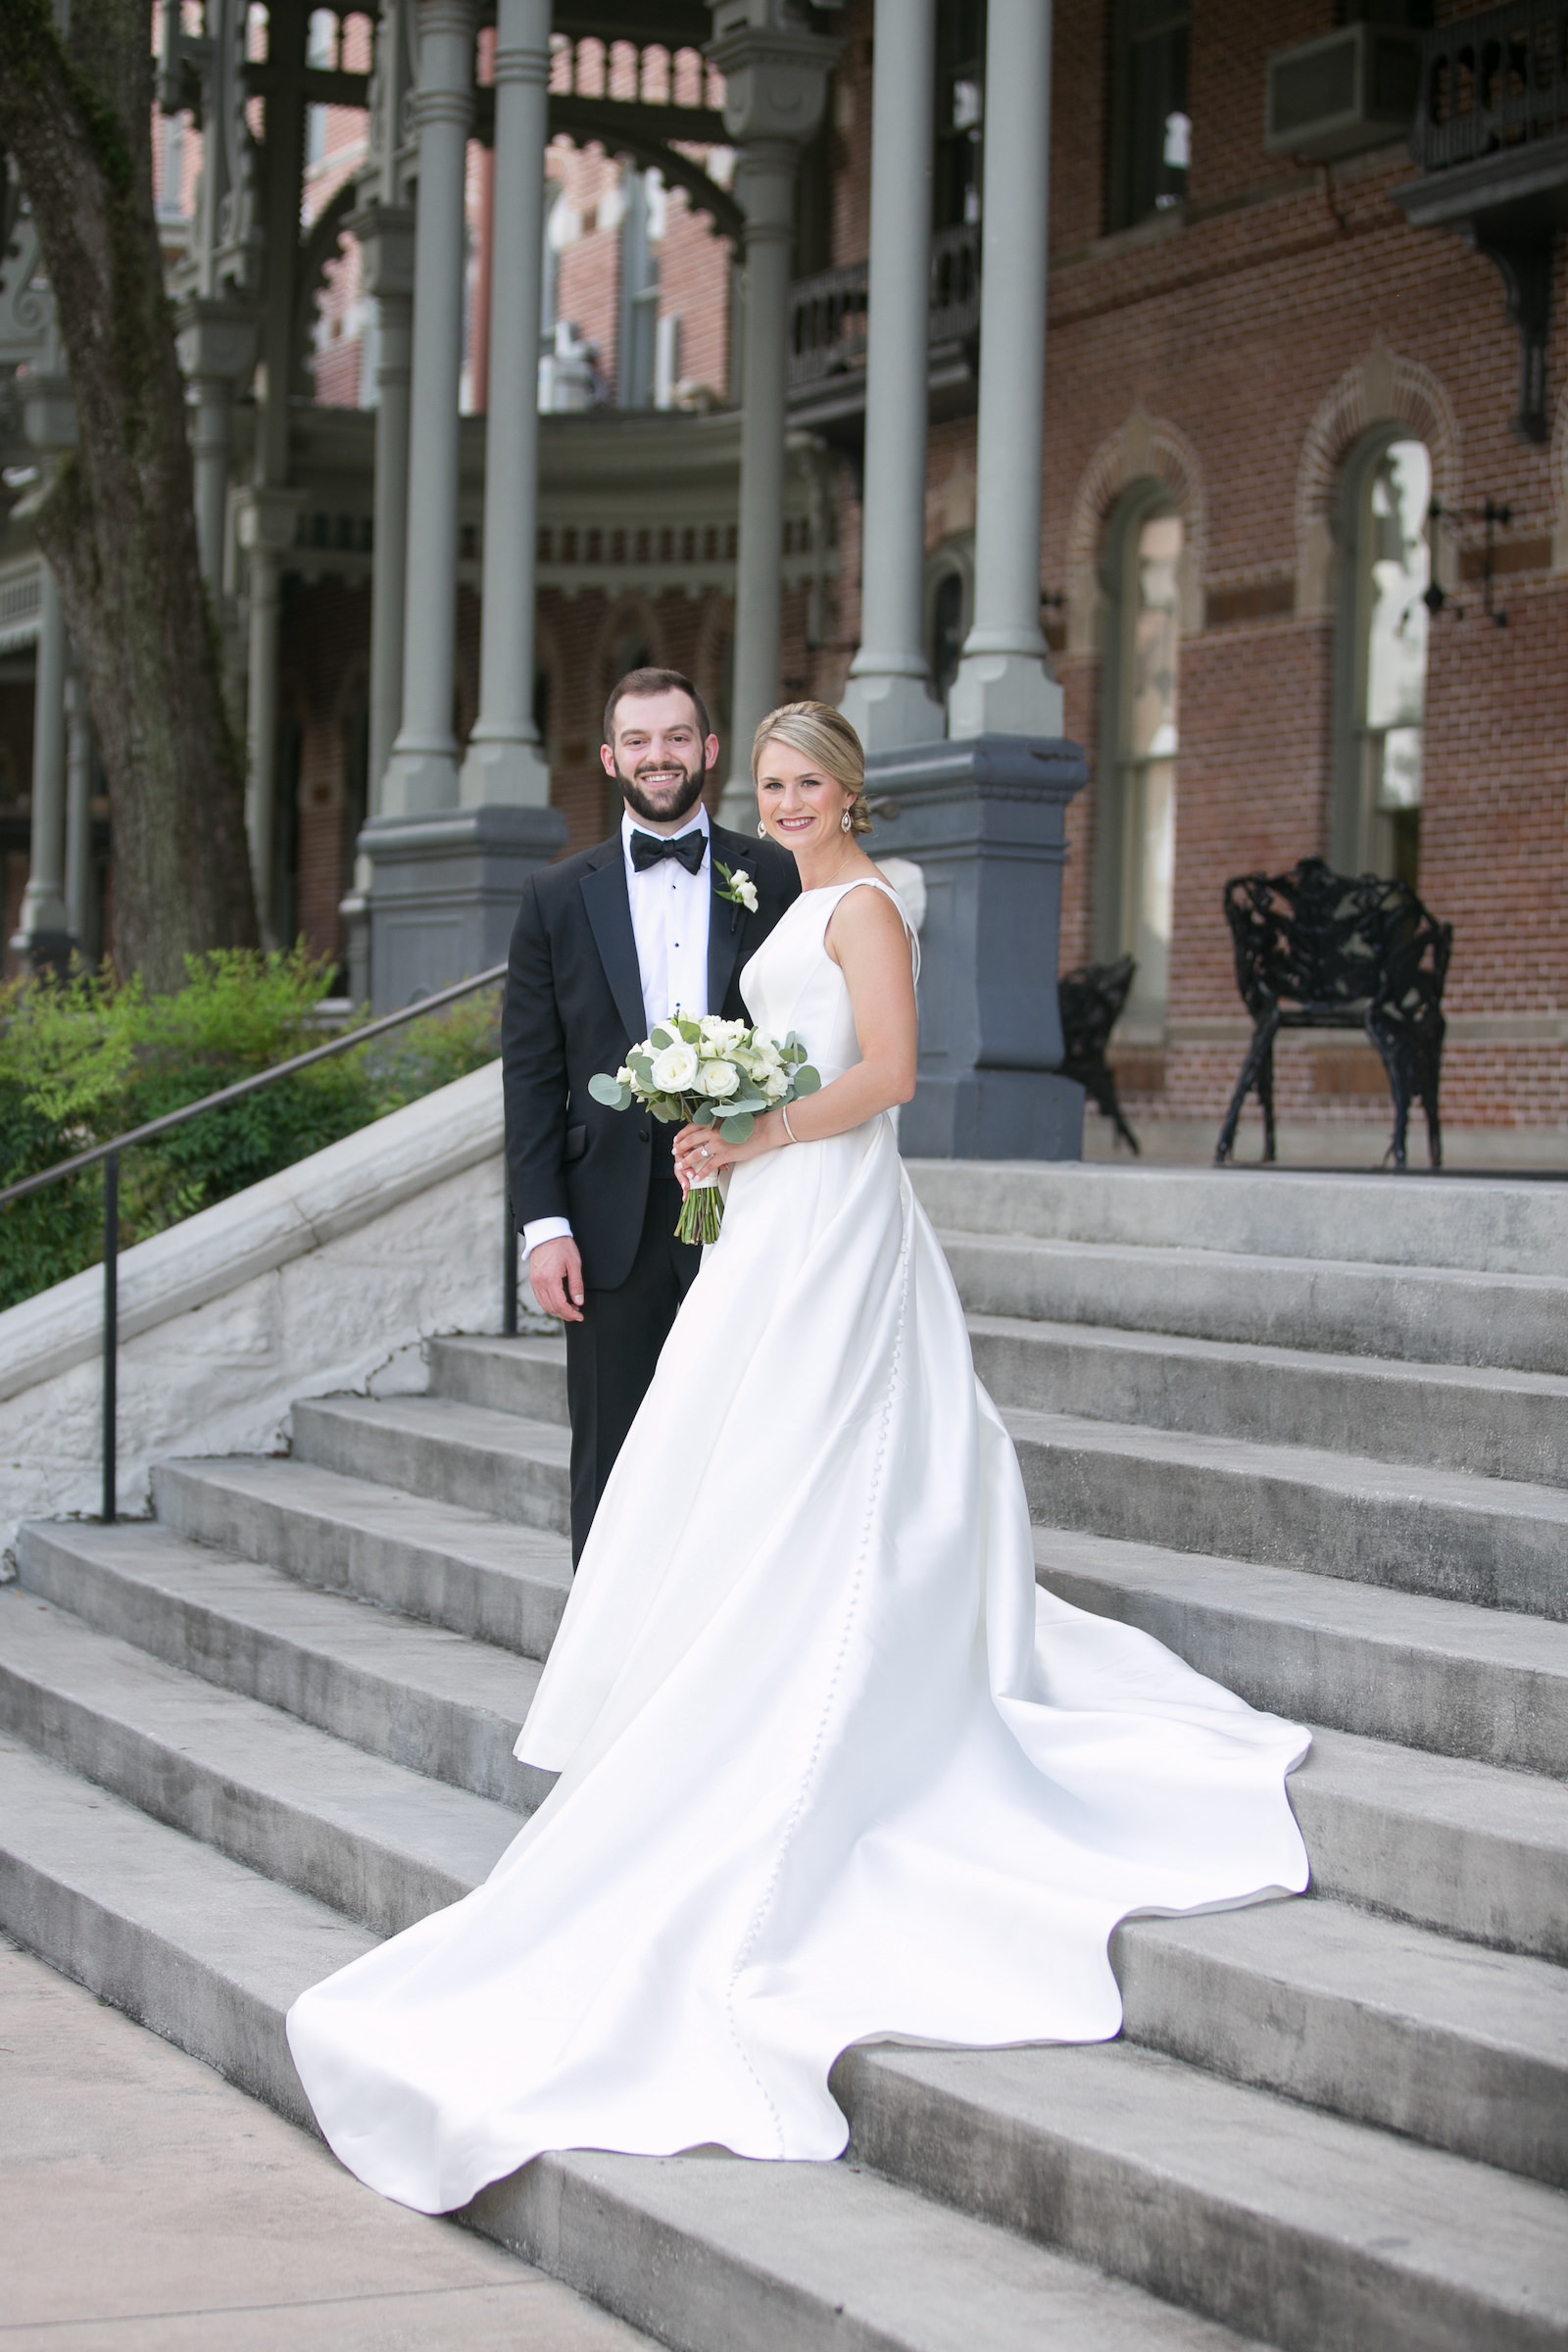 Bride and Groom Outdoor Portrait in Downtown Tampa at Plant Museum UT | Bateau Neck Mikado Satin Martina Liana Simple Elegant Wedding Dress with Buttons Down Back | Groom in Classic Black Tux | Neutral White Rose and Greenery Bouquet | Carrie Wildes Photography